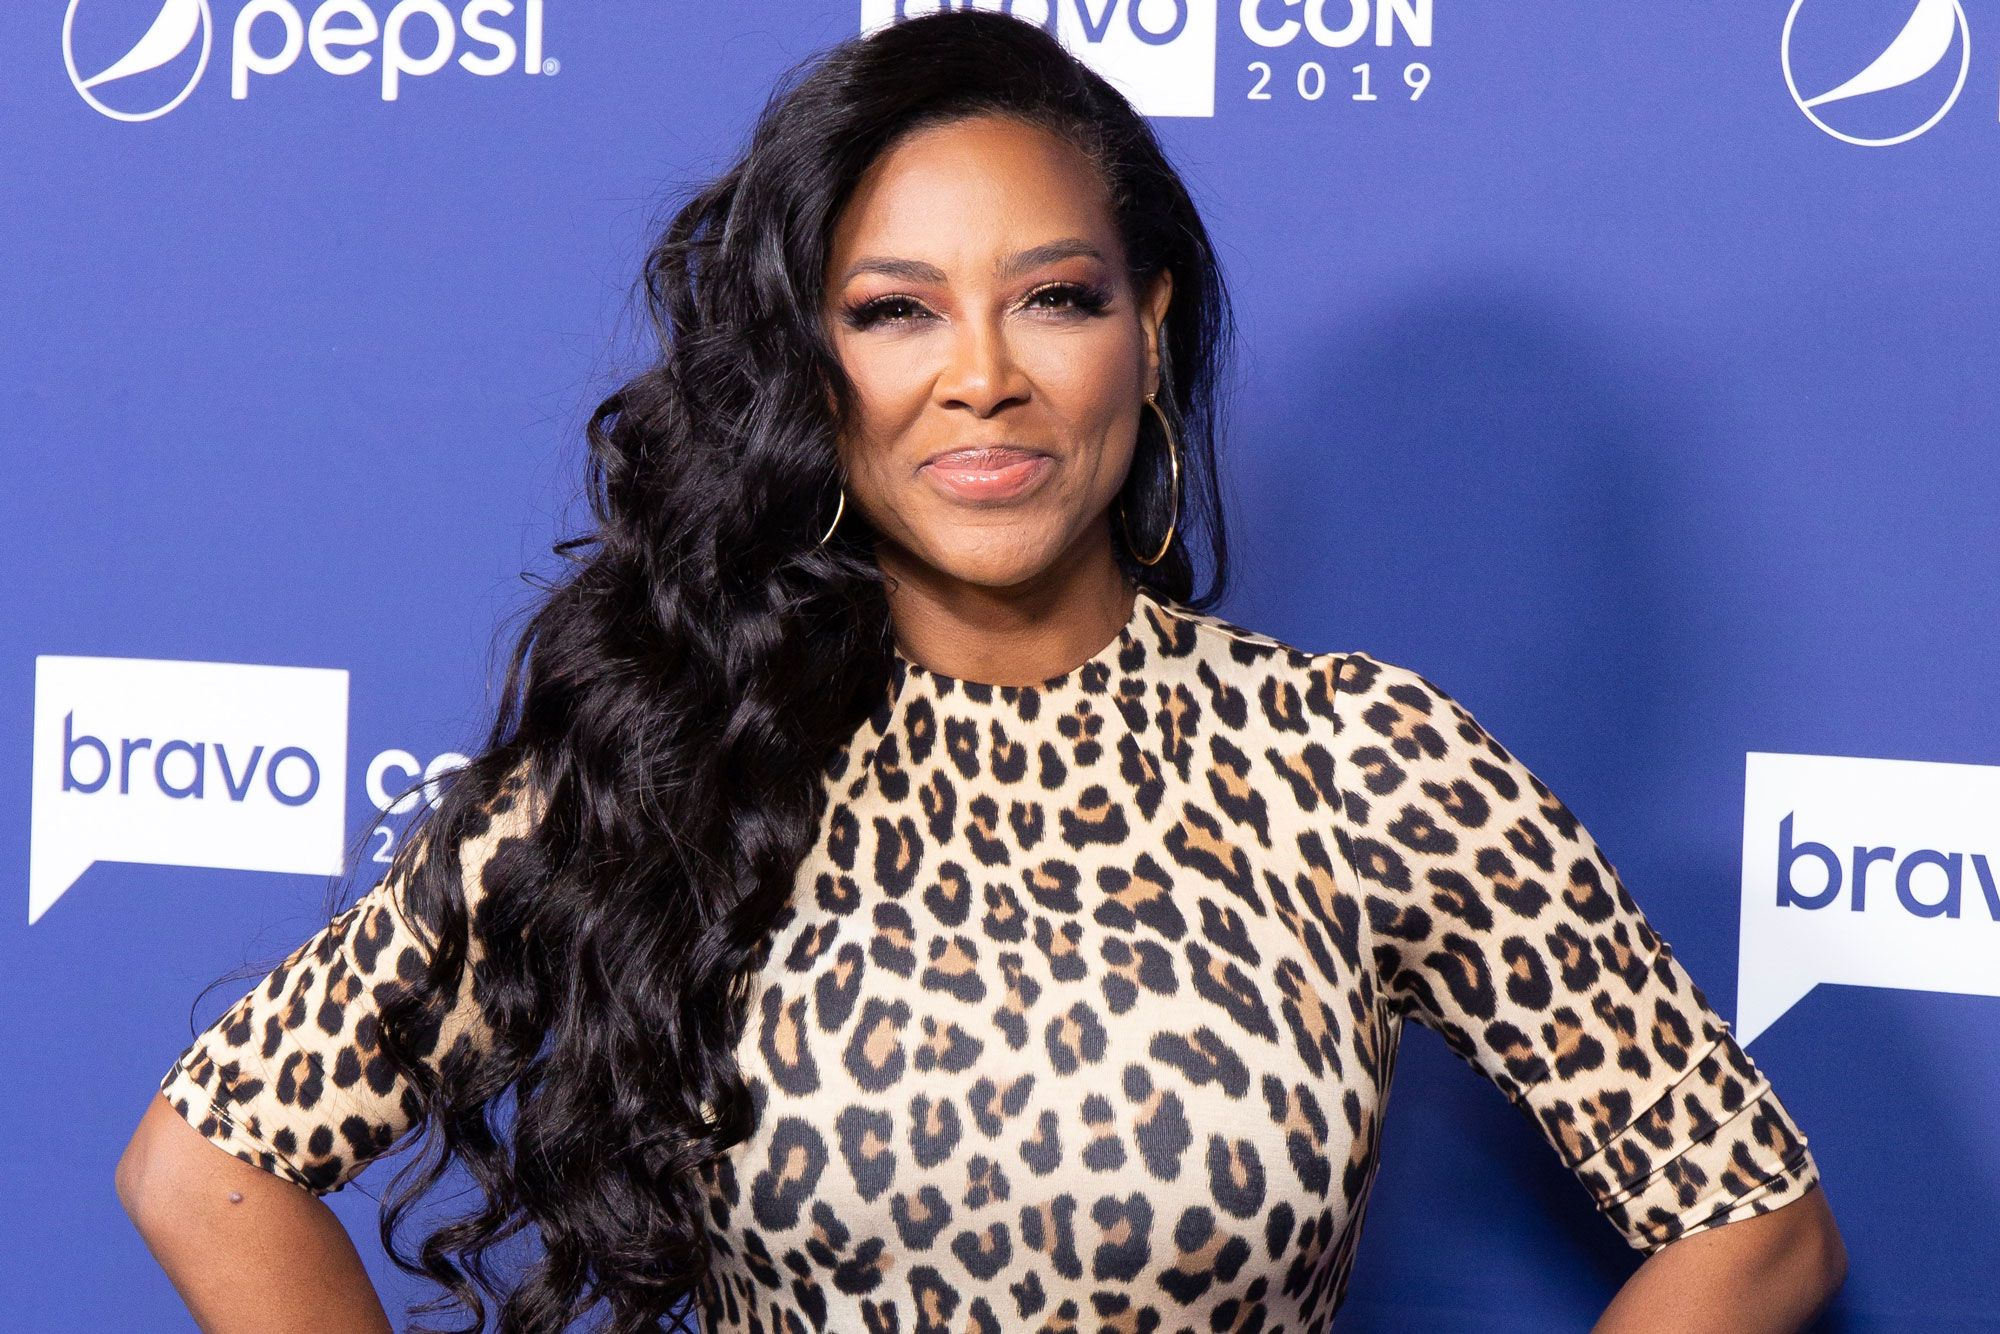 Kenya Moore Breaks The Internet – She Drops Her Clothes For This Pic And Has Fans In Awe